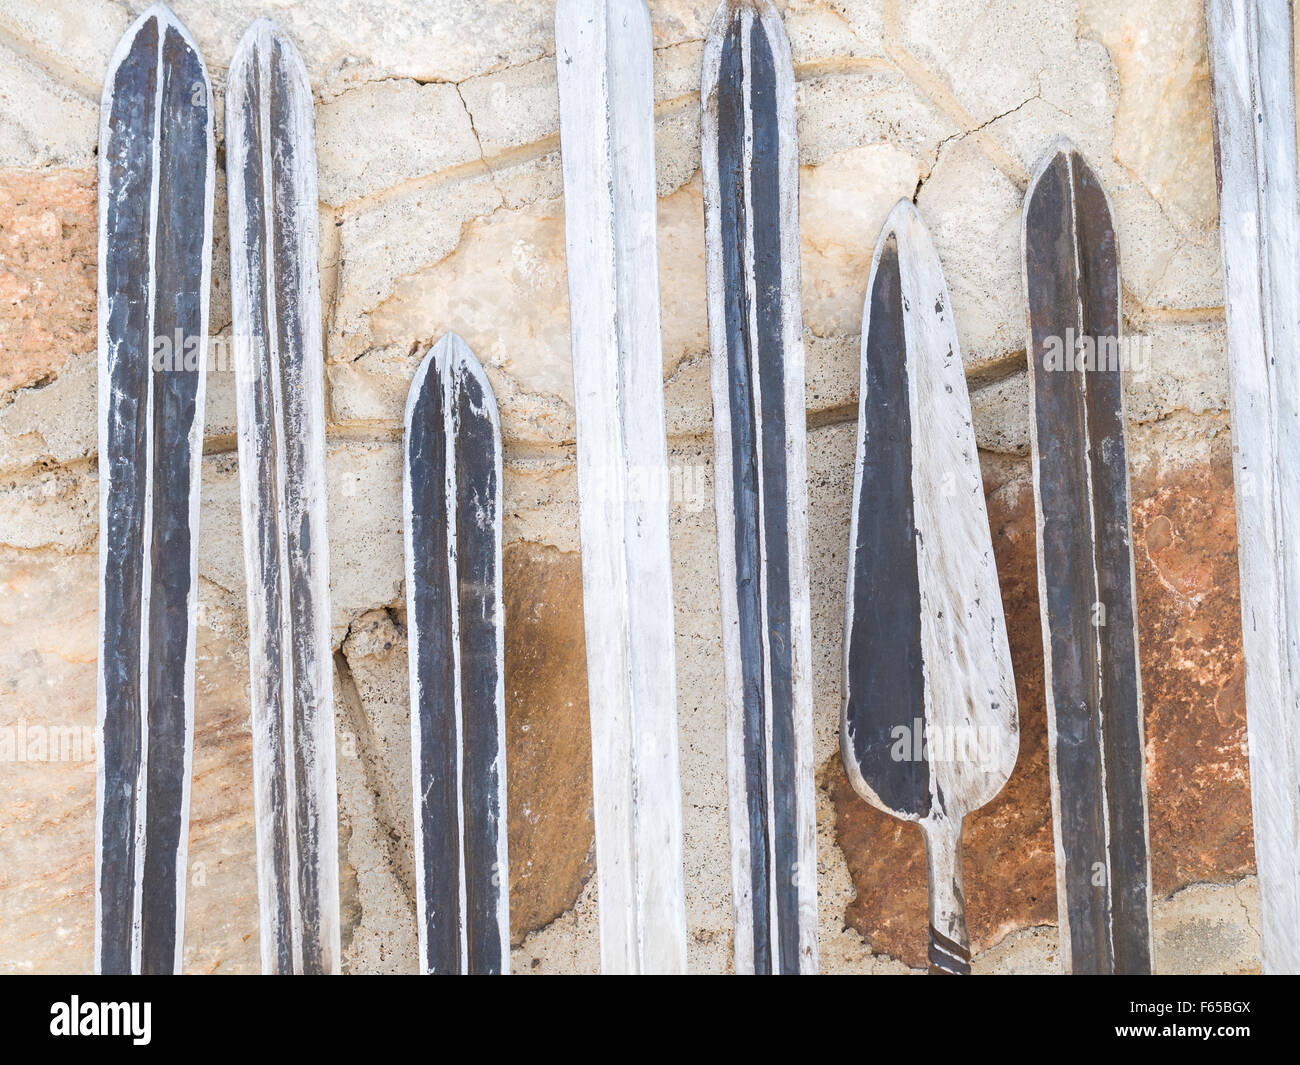 Maasai weapons: swords, spears and knifes, sold as souvenirs at a local Maasai market. - Stock Image